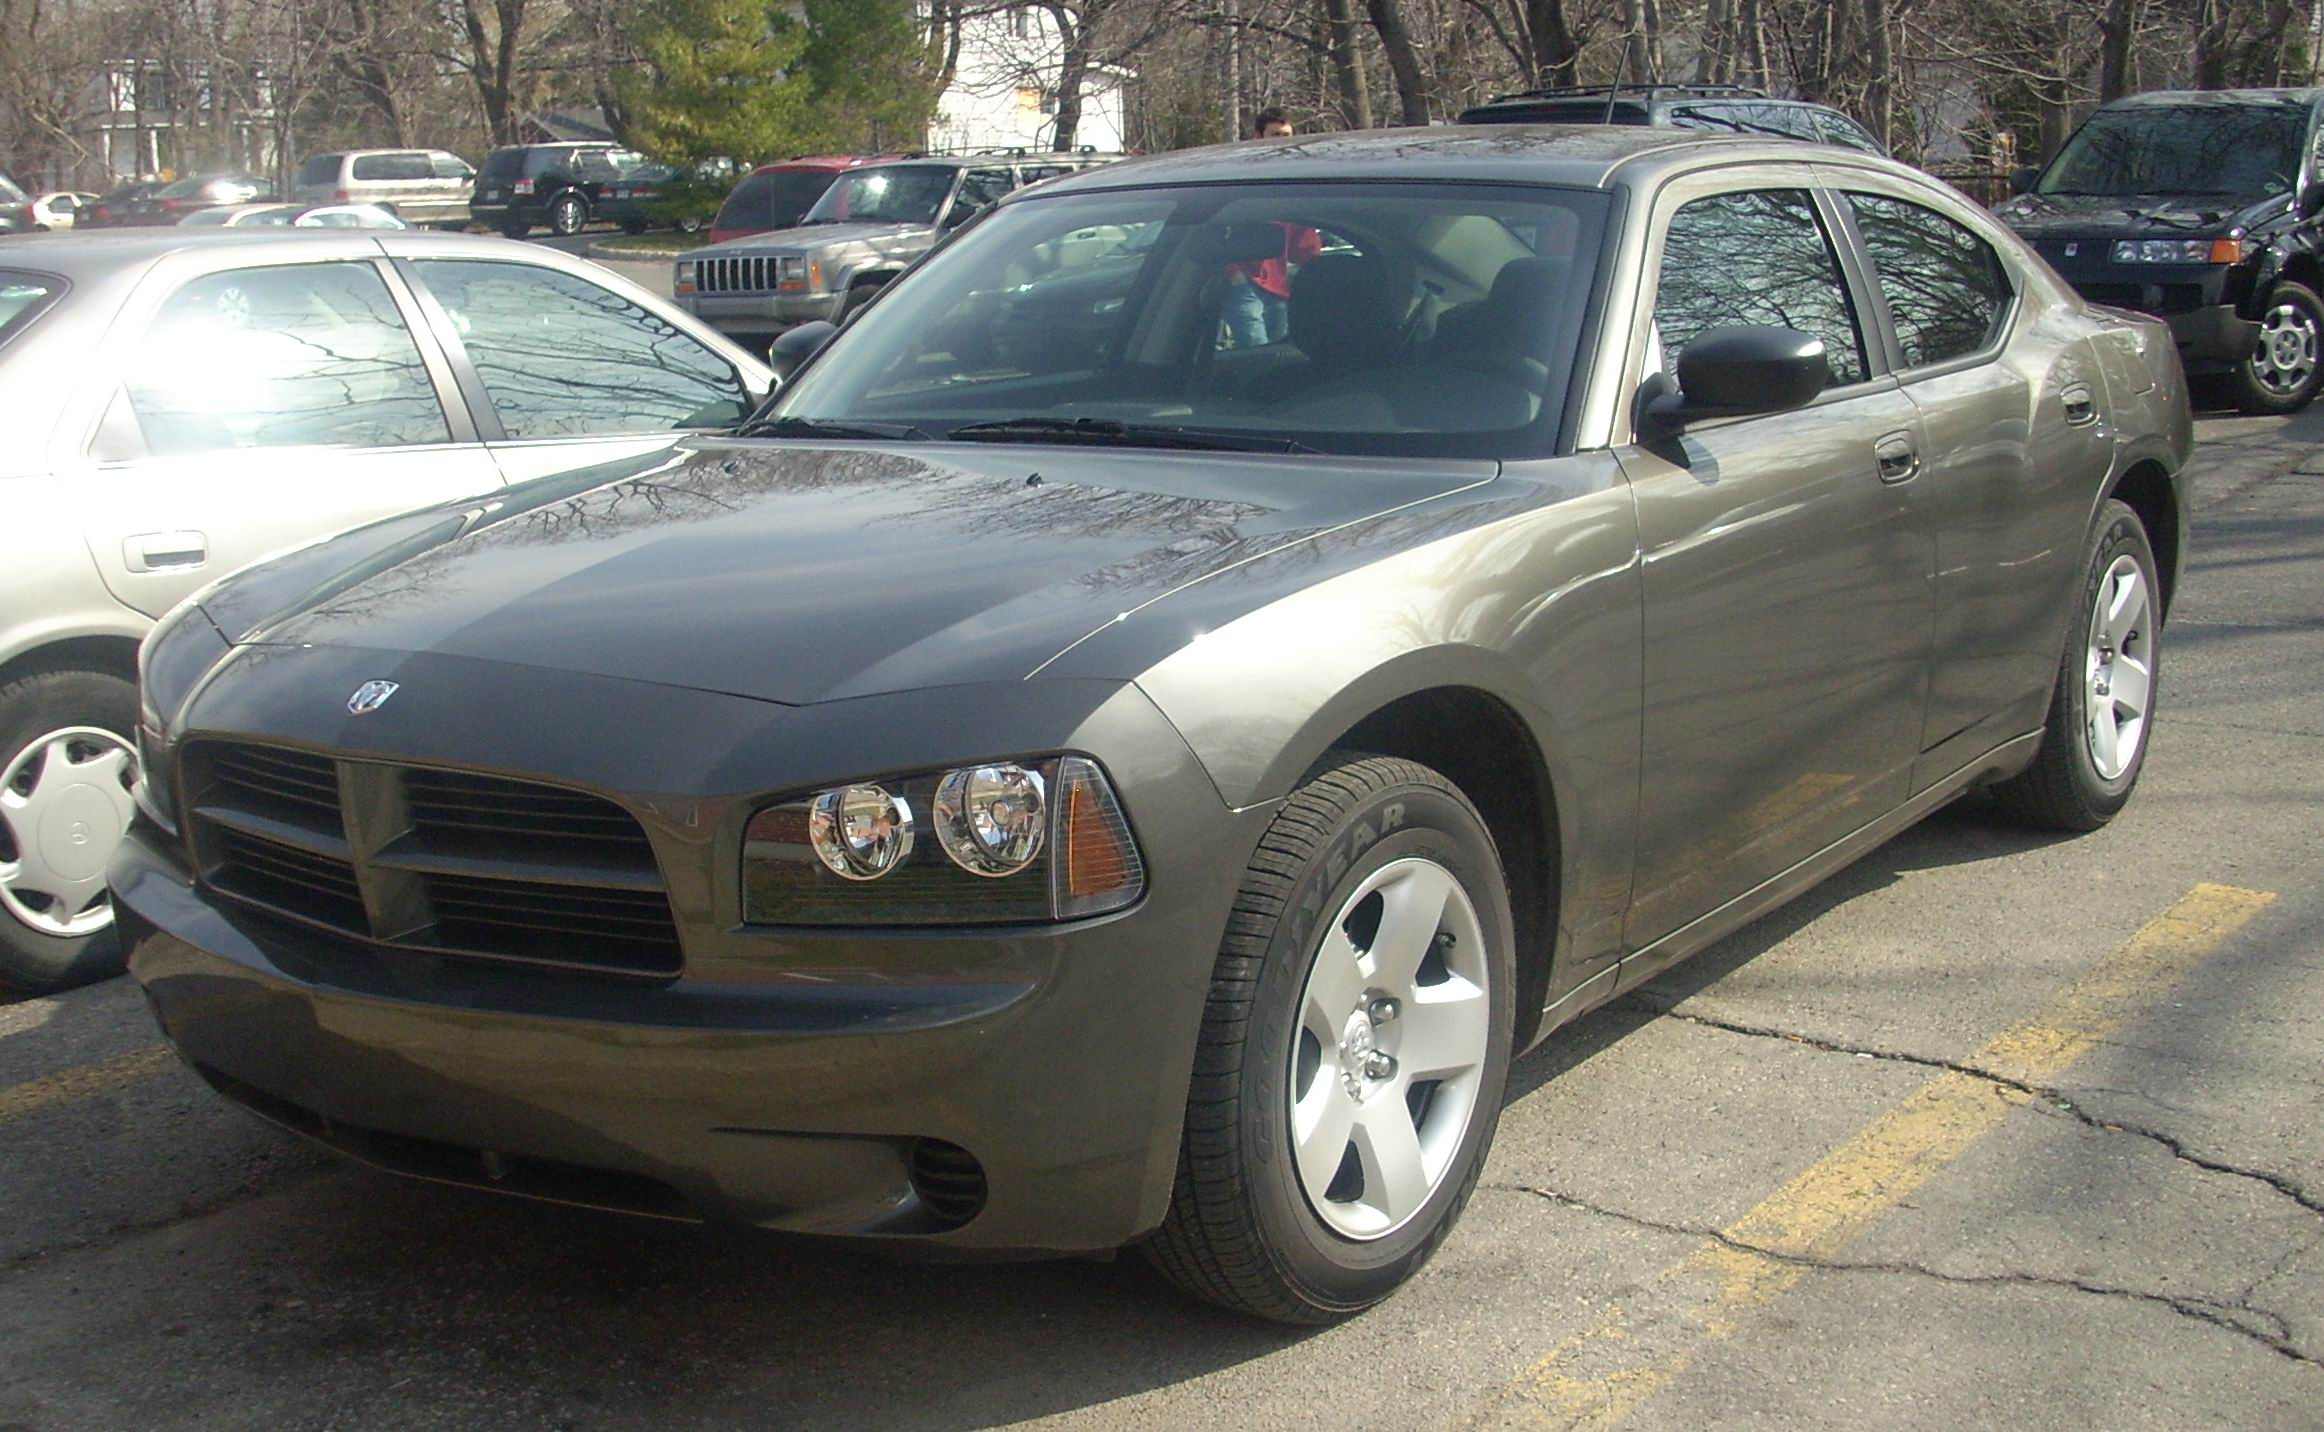 file:'08 dodge charger - wikimedia commons